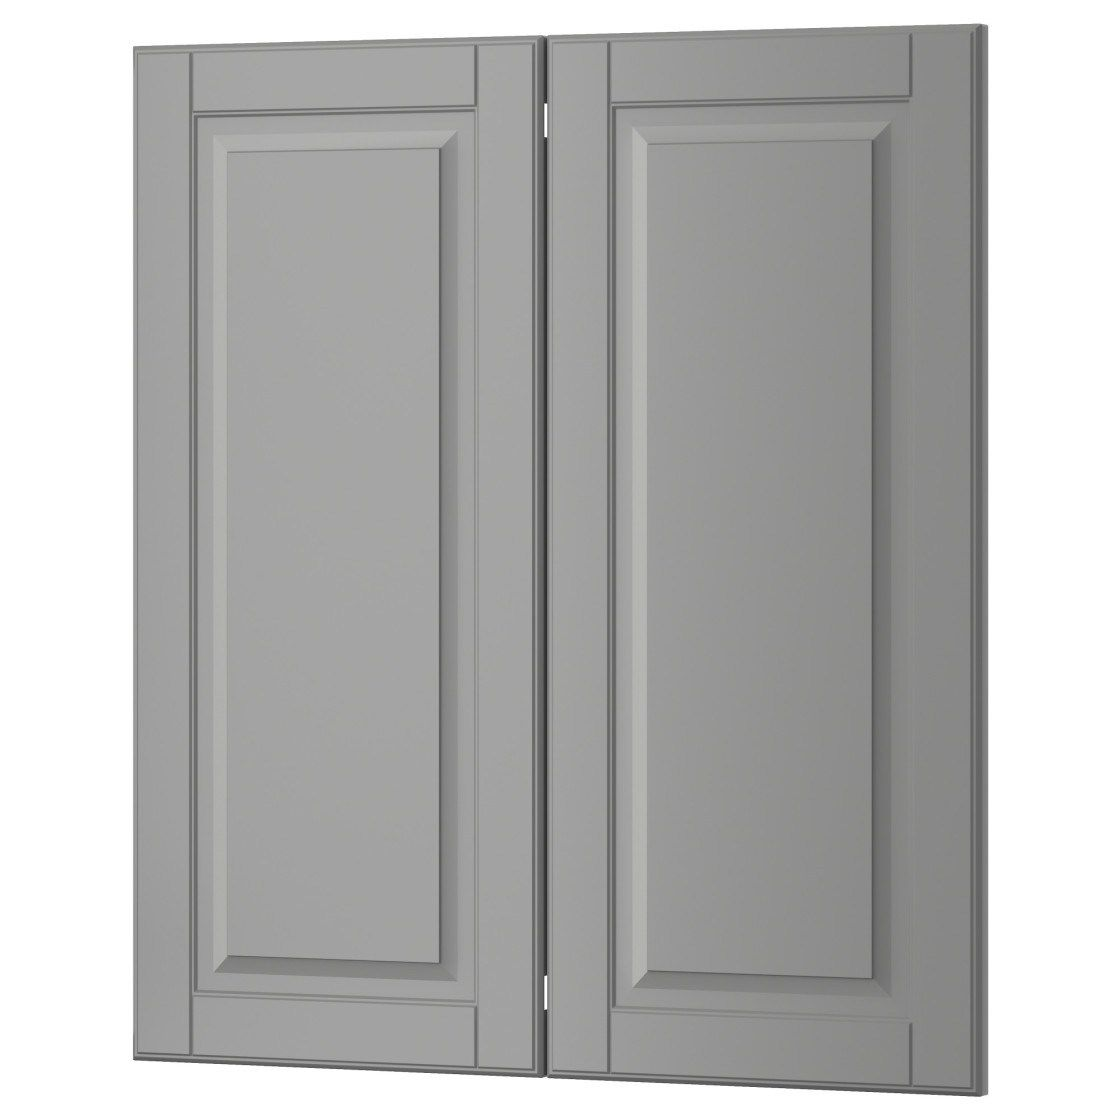 Kitchen Cabinets For Sale London Cabinets Cabinet Doors Kitchen Doors Kitchen Cabinets Sale